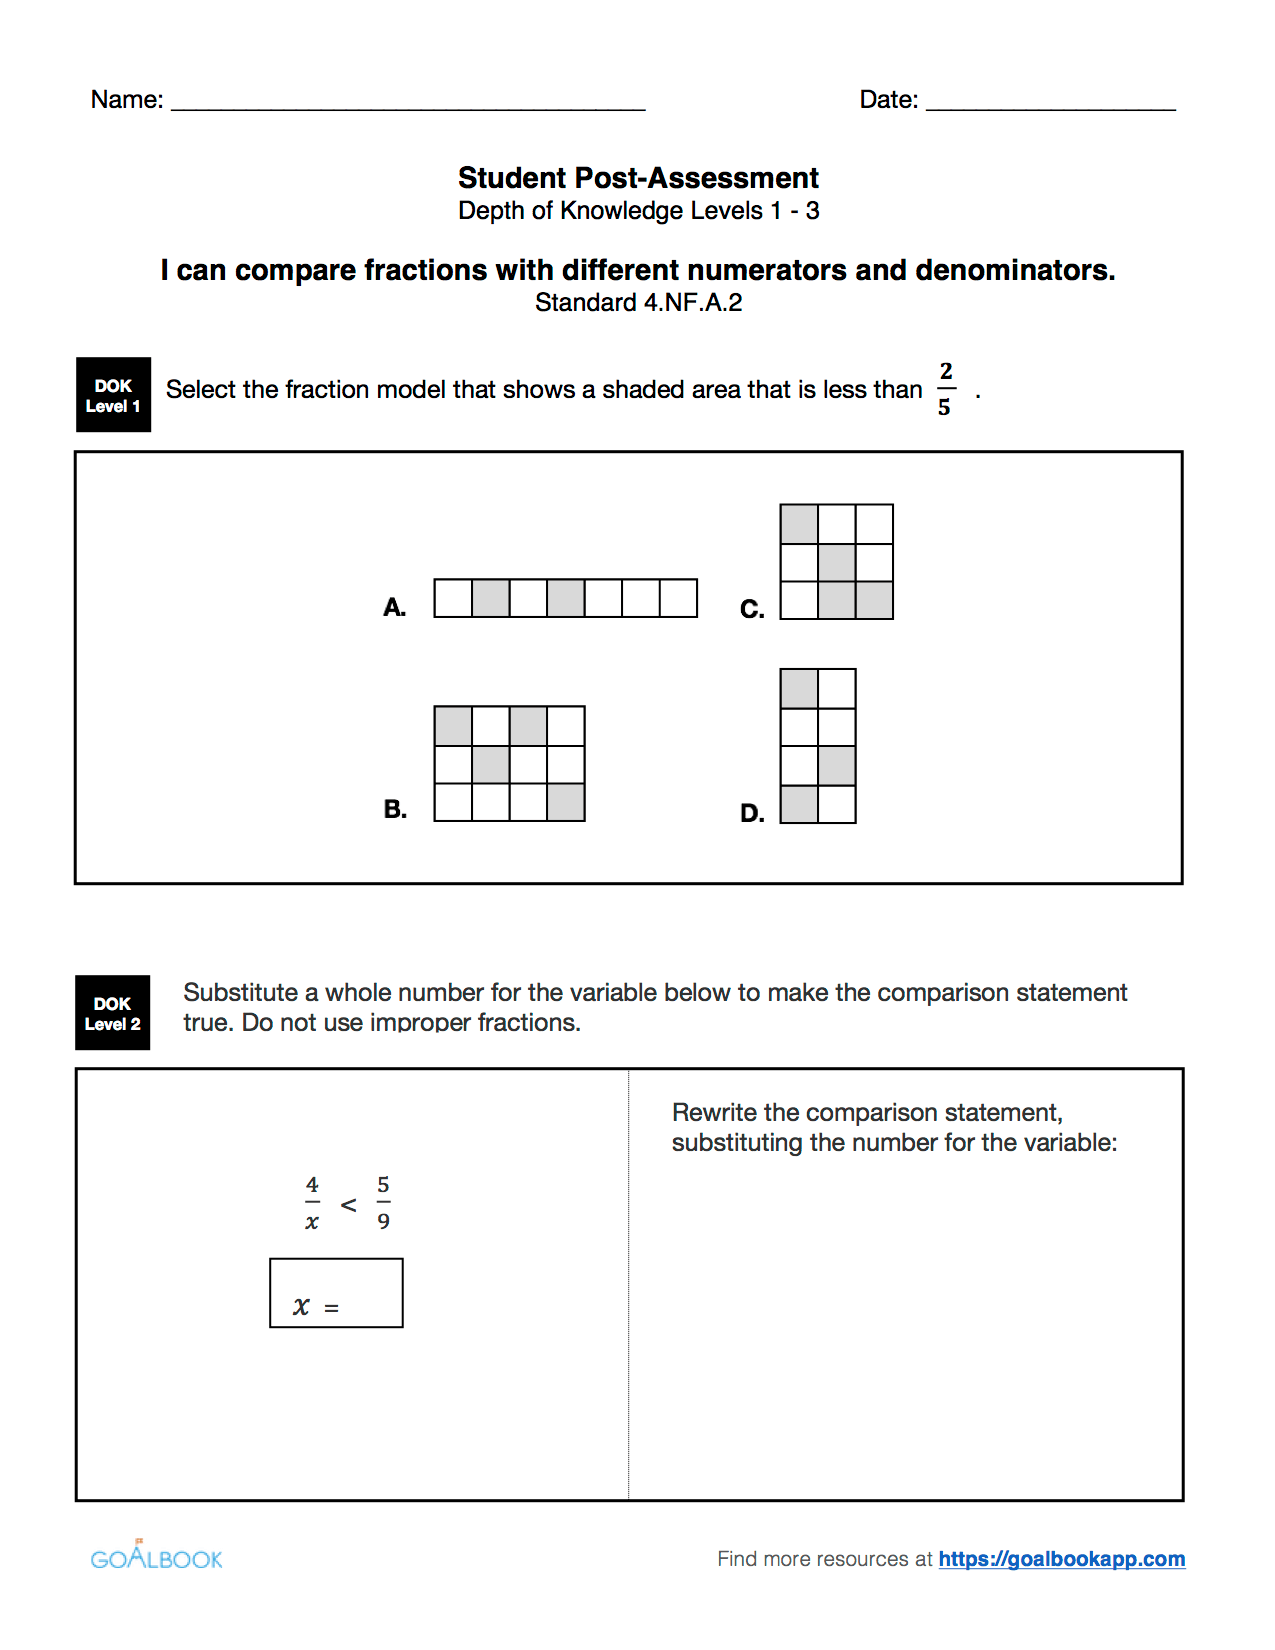 4 2 Compare Fractions With Different Denominators